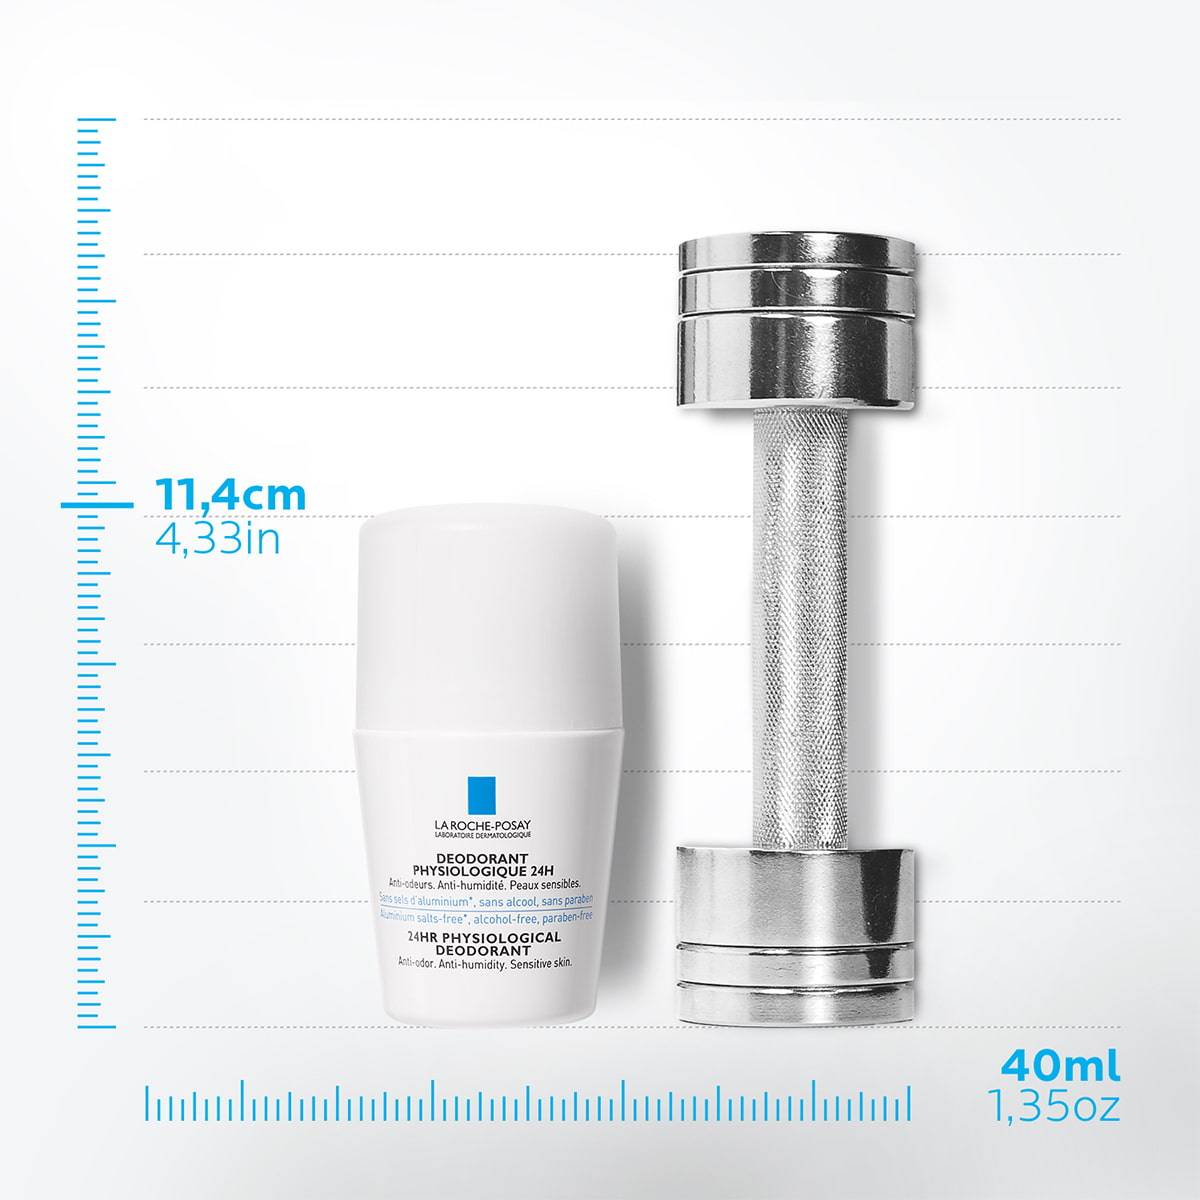 La Roche Posay ProductPage Deodorant Physiological Roll On 24h 50ml 33